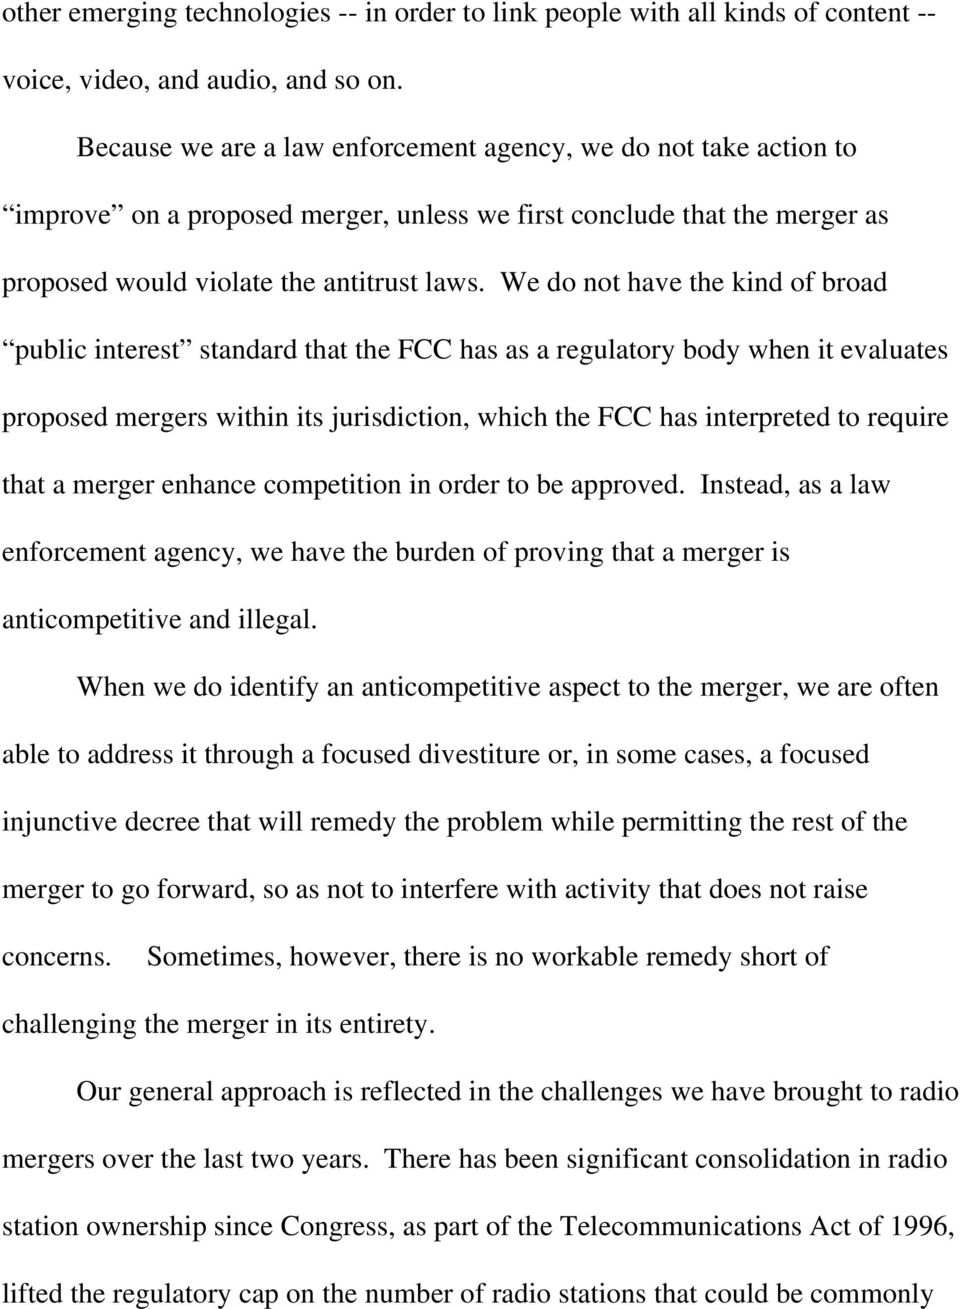 We do not have the kind of broad public interest standard that the FCC has as a regulatory body when it evaluates proposed mergers within its jurisdiction, which the FCC has interpreted to require